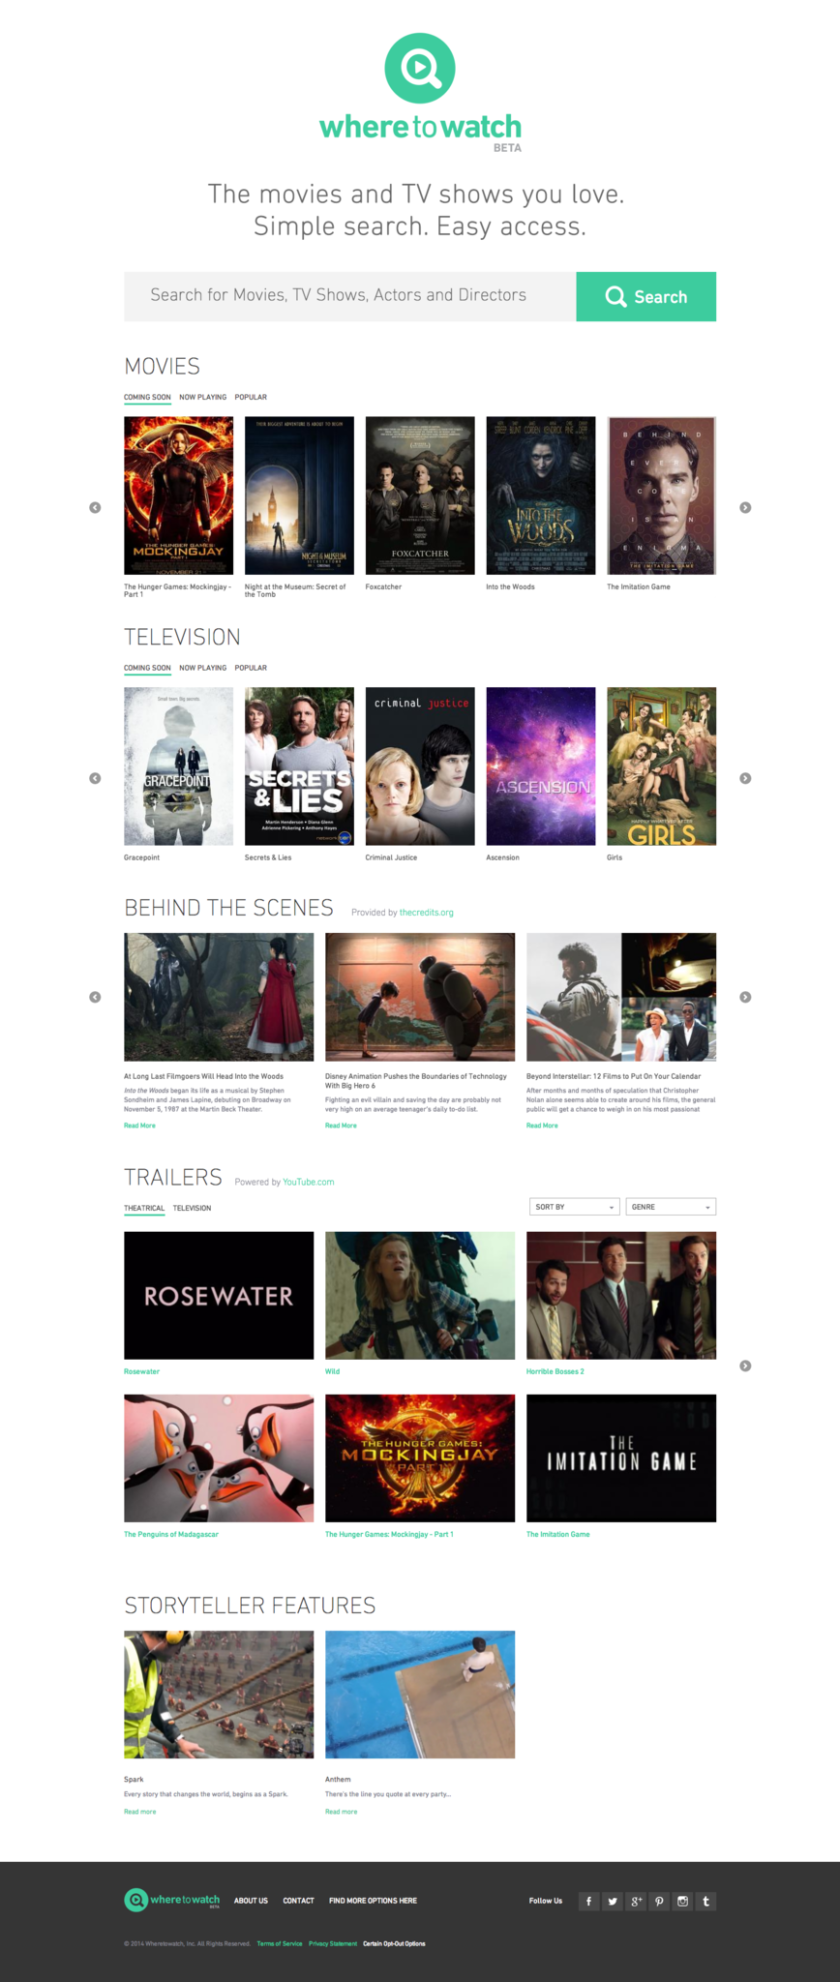 The Motion Picture Assn. of America has launched a new website to help consumers search for movies and TV shows on legitimate platforms.